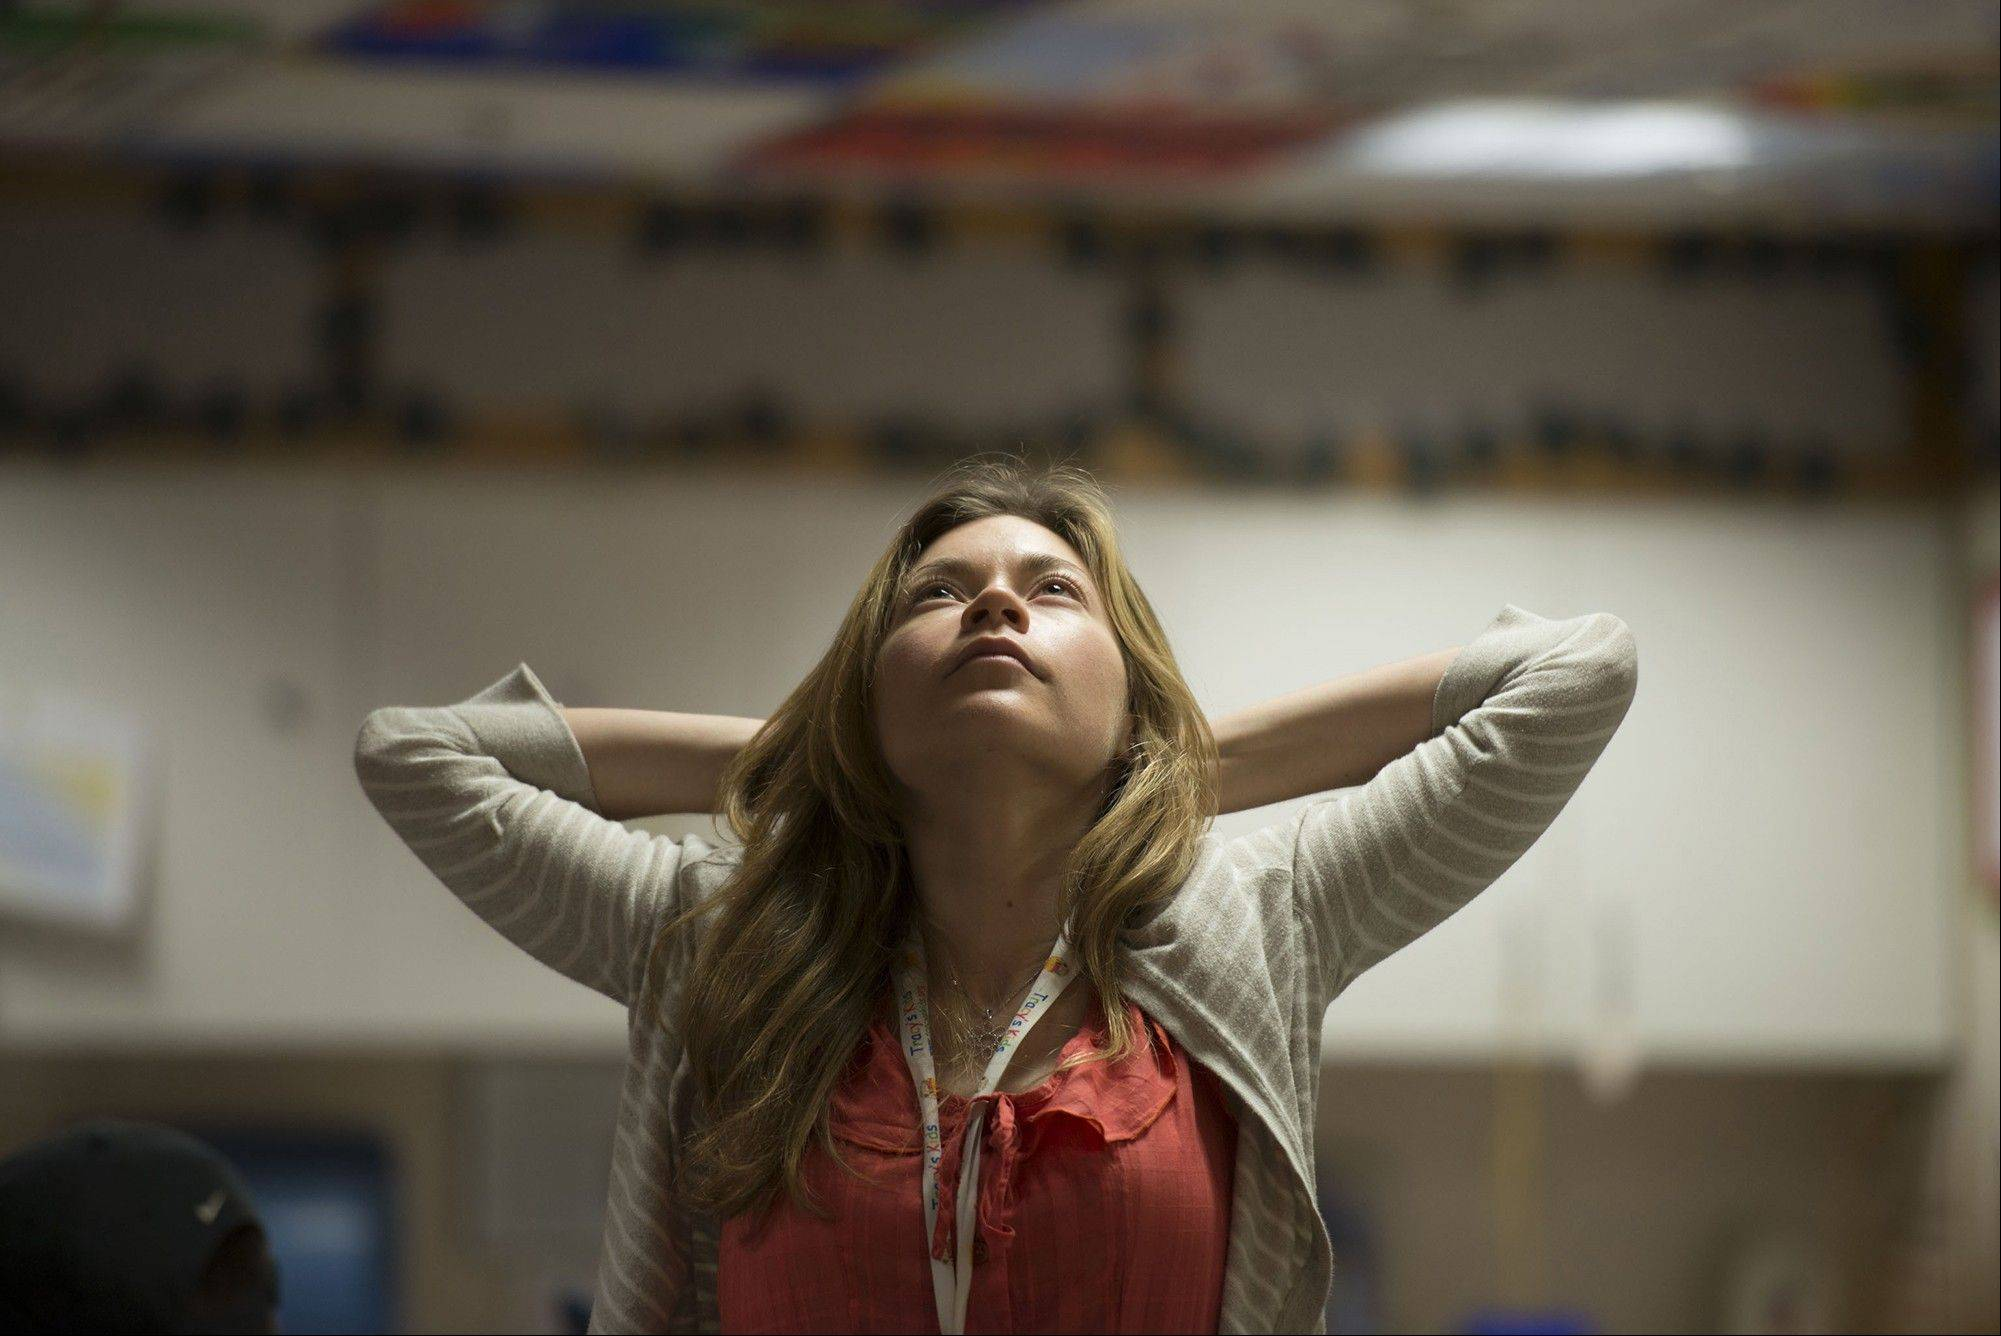 Nurse Kate Martin takes a moment out of her schedule to do some breathing and stretching exercises inside the Georgetown Lombardi Comprehensive Cancer Center in Washington, D.C.